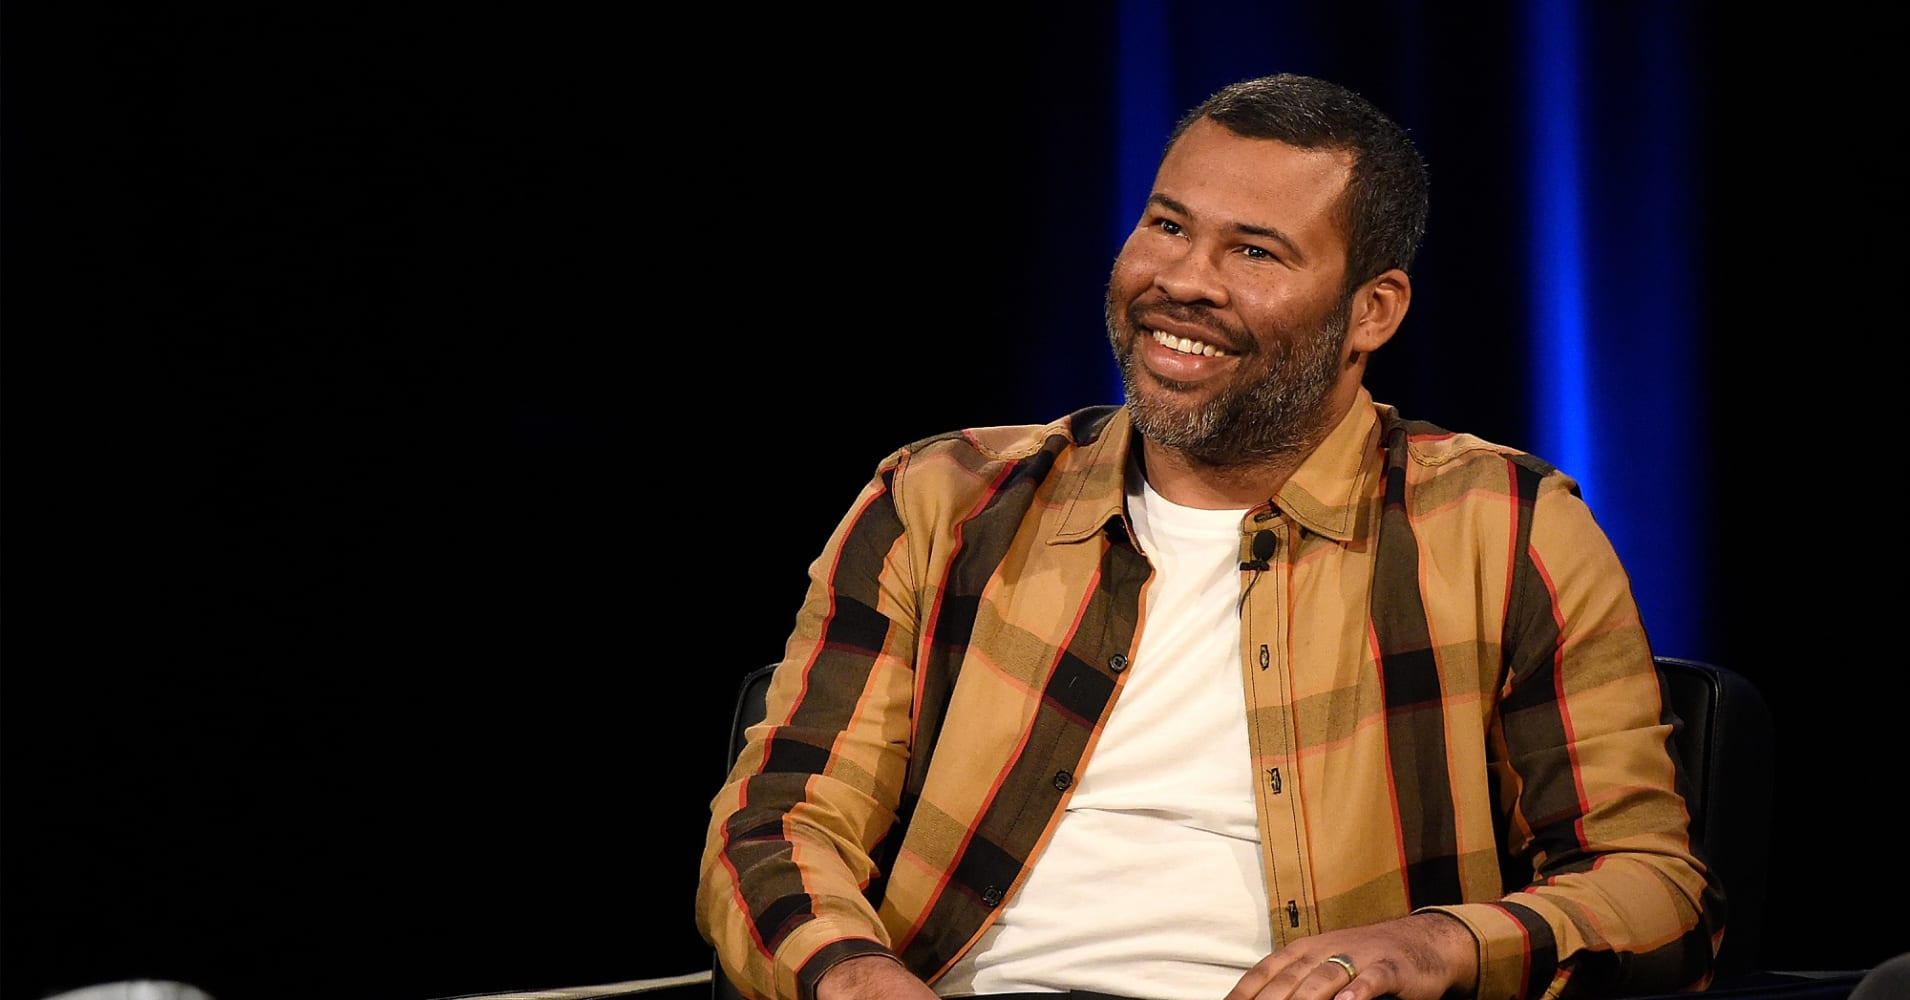 Jordan Peele makes history with best screenplay Oscar win for 'Get Out'